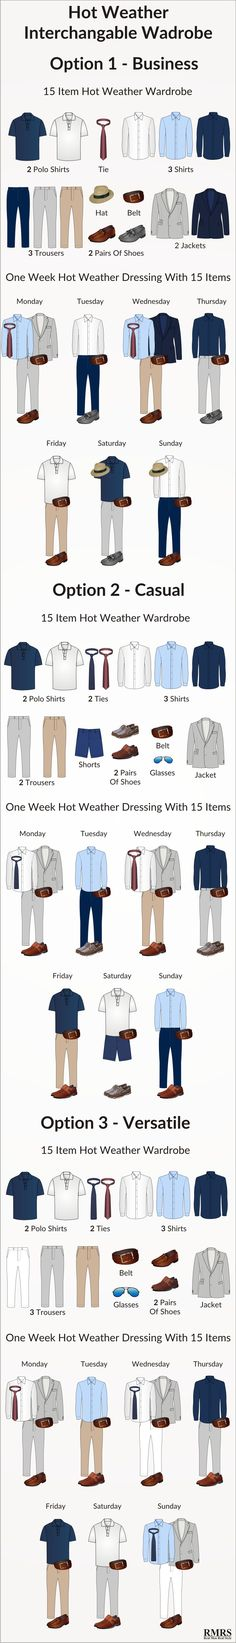 15 Item Summer Wardrobe | Business, Casual & Versatile Wardrobe For The Heat